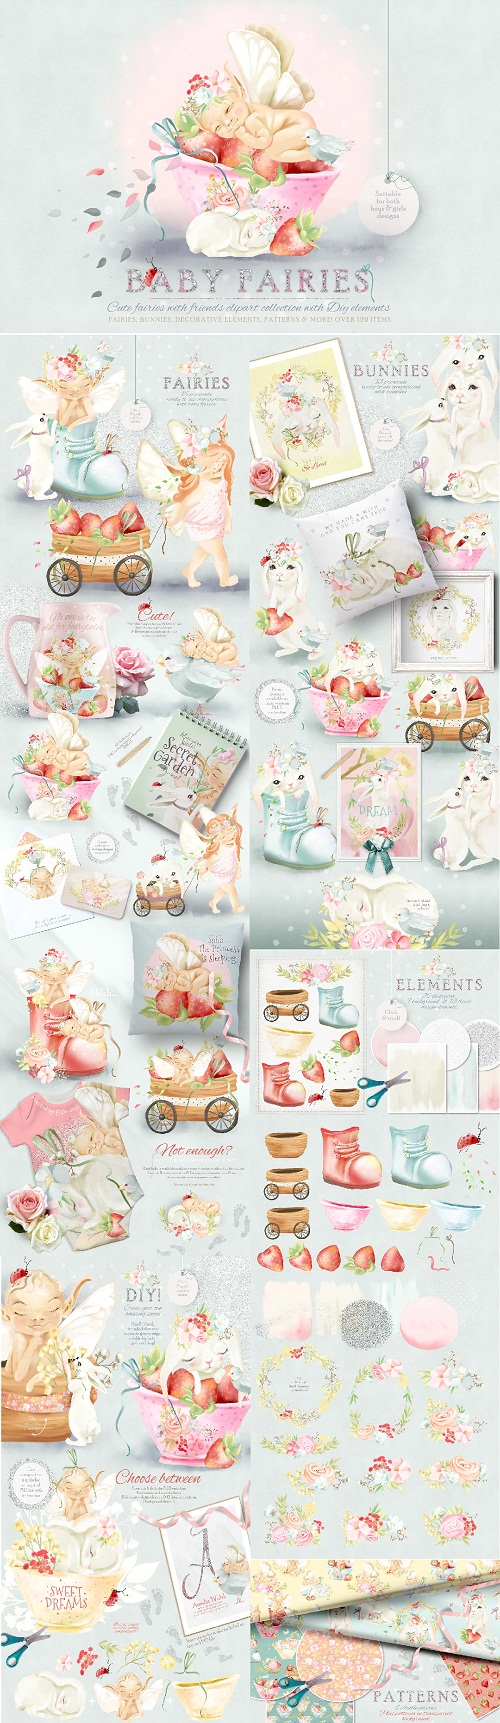 Download Baby Fairies Clipart Collection 2770171.